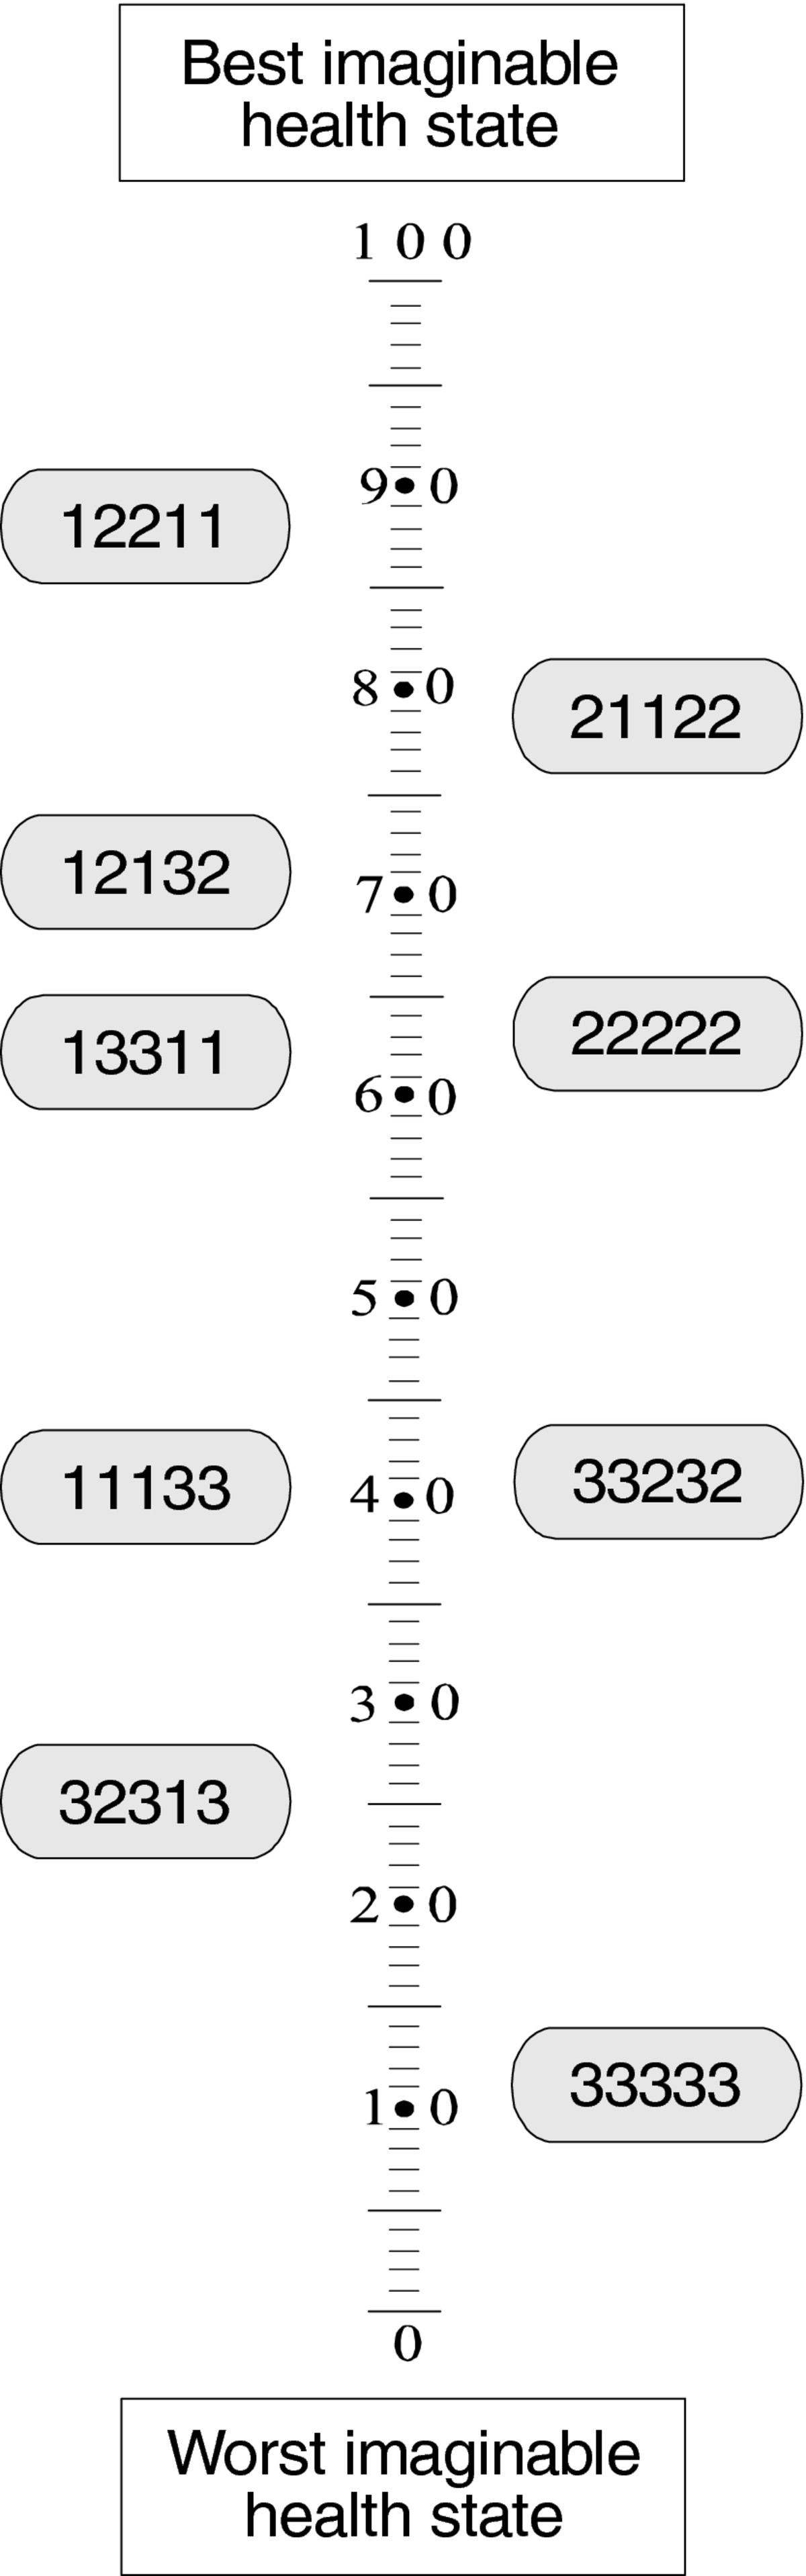 http://static-content.springer.com/image/art%3A10.1186%2F1477-7525-10-118/MediaObjects/12955_2012_Article_1011_Fig2_HTML.jpg